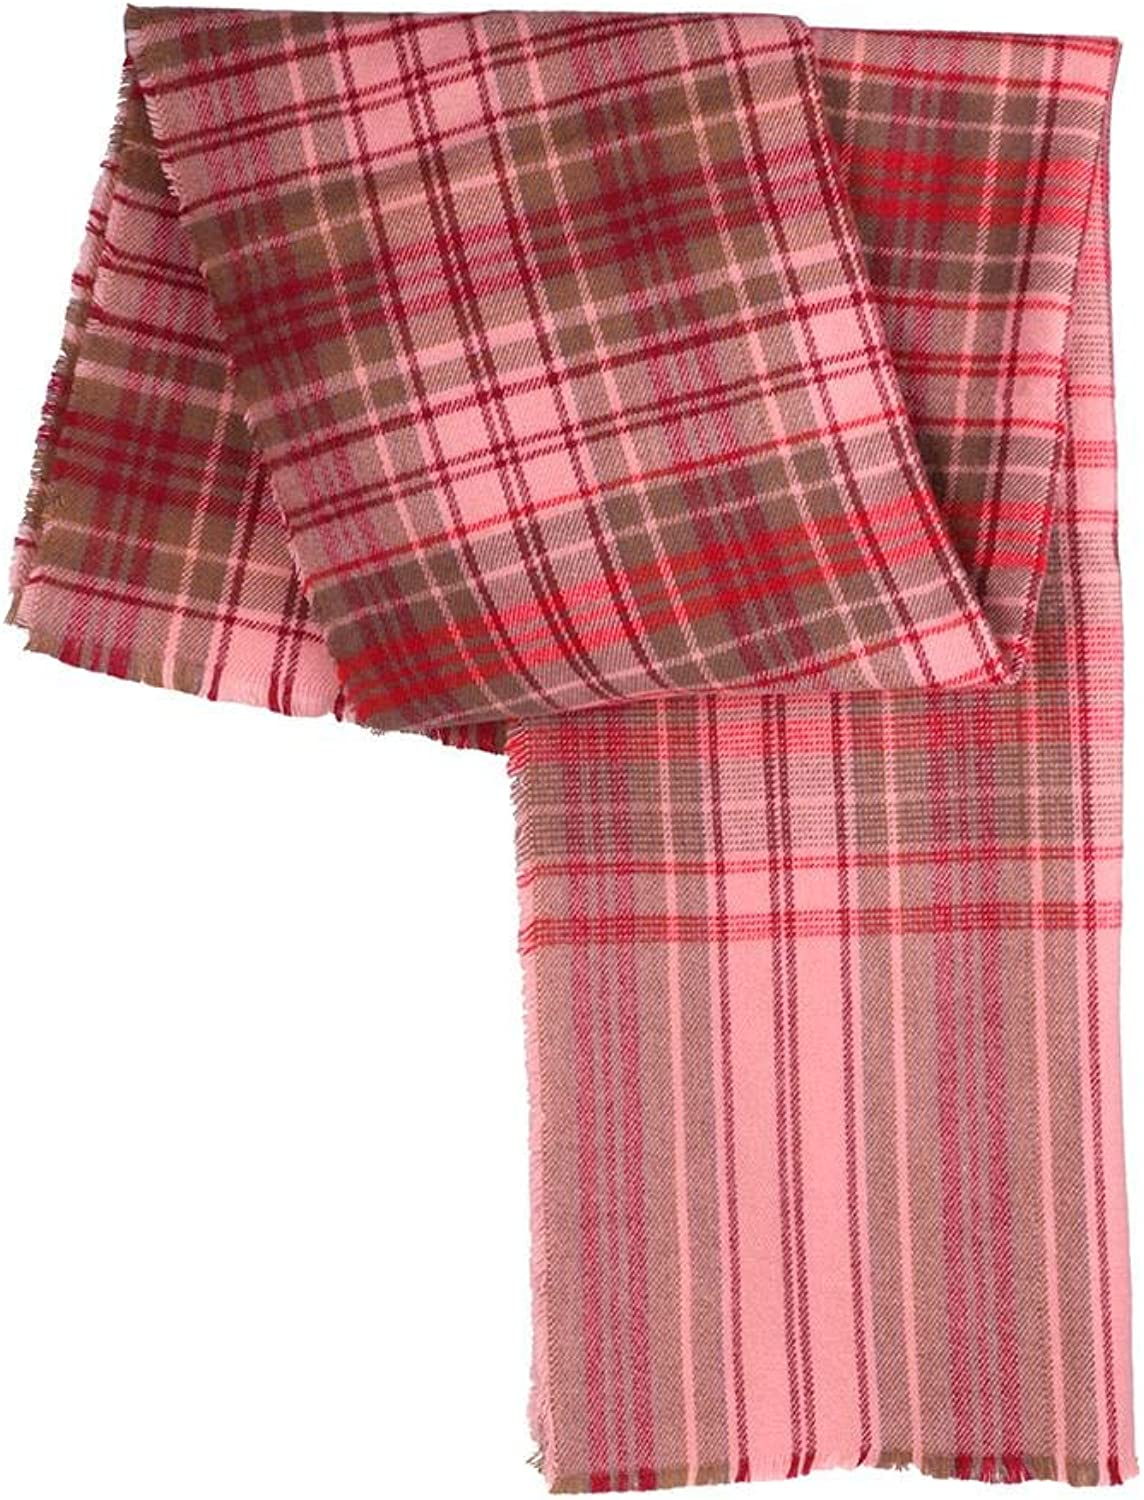 Alloet Cashmere Plaid Stripe Scarf Winter Autumn Warm Women Korean Wraps Shawls